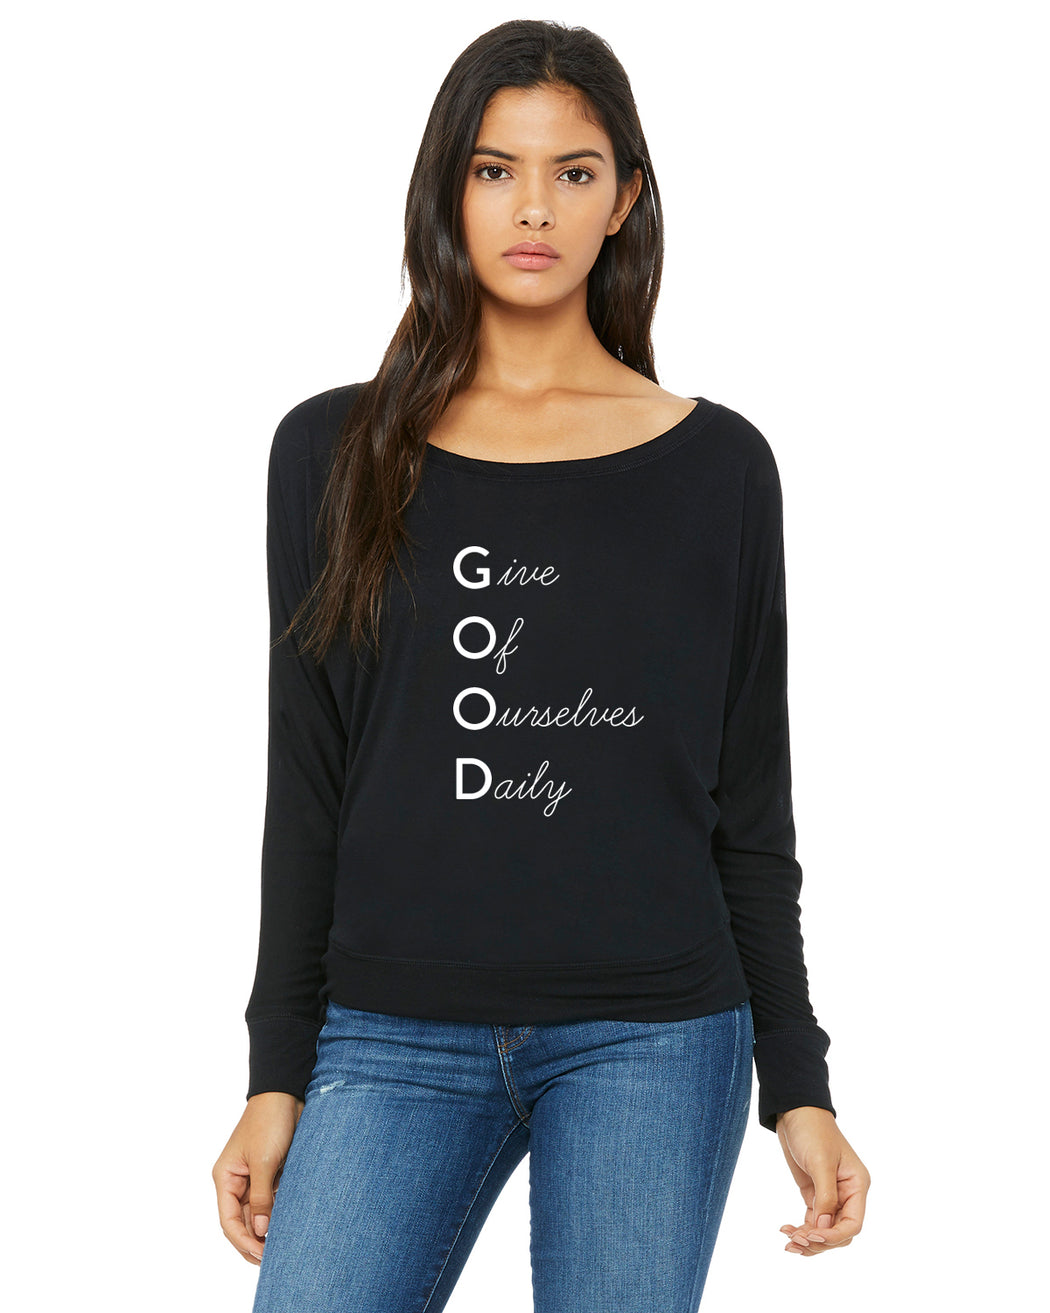 G.O.O.D. Off the Shoulder Tee